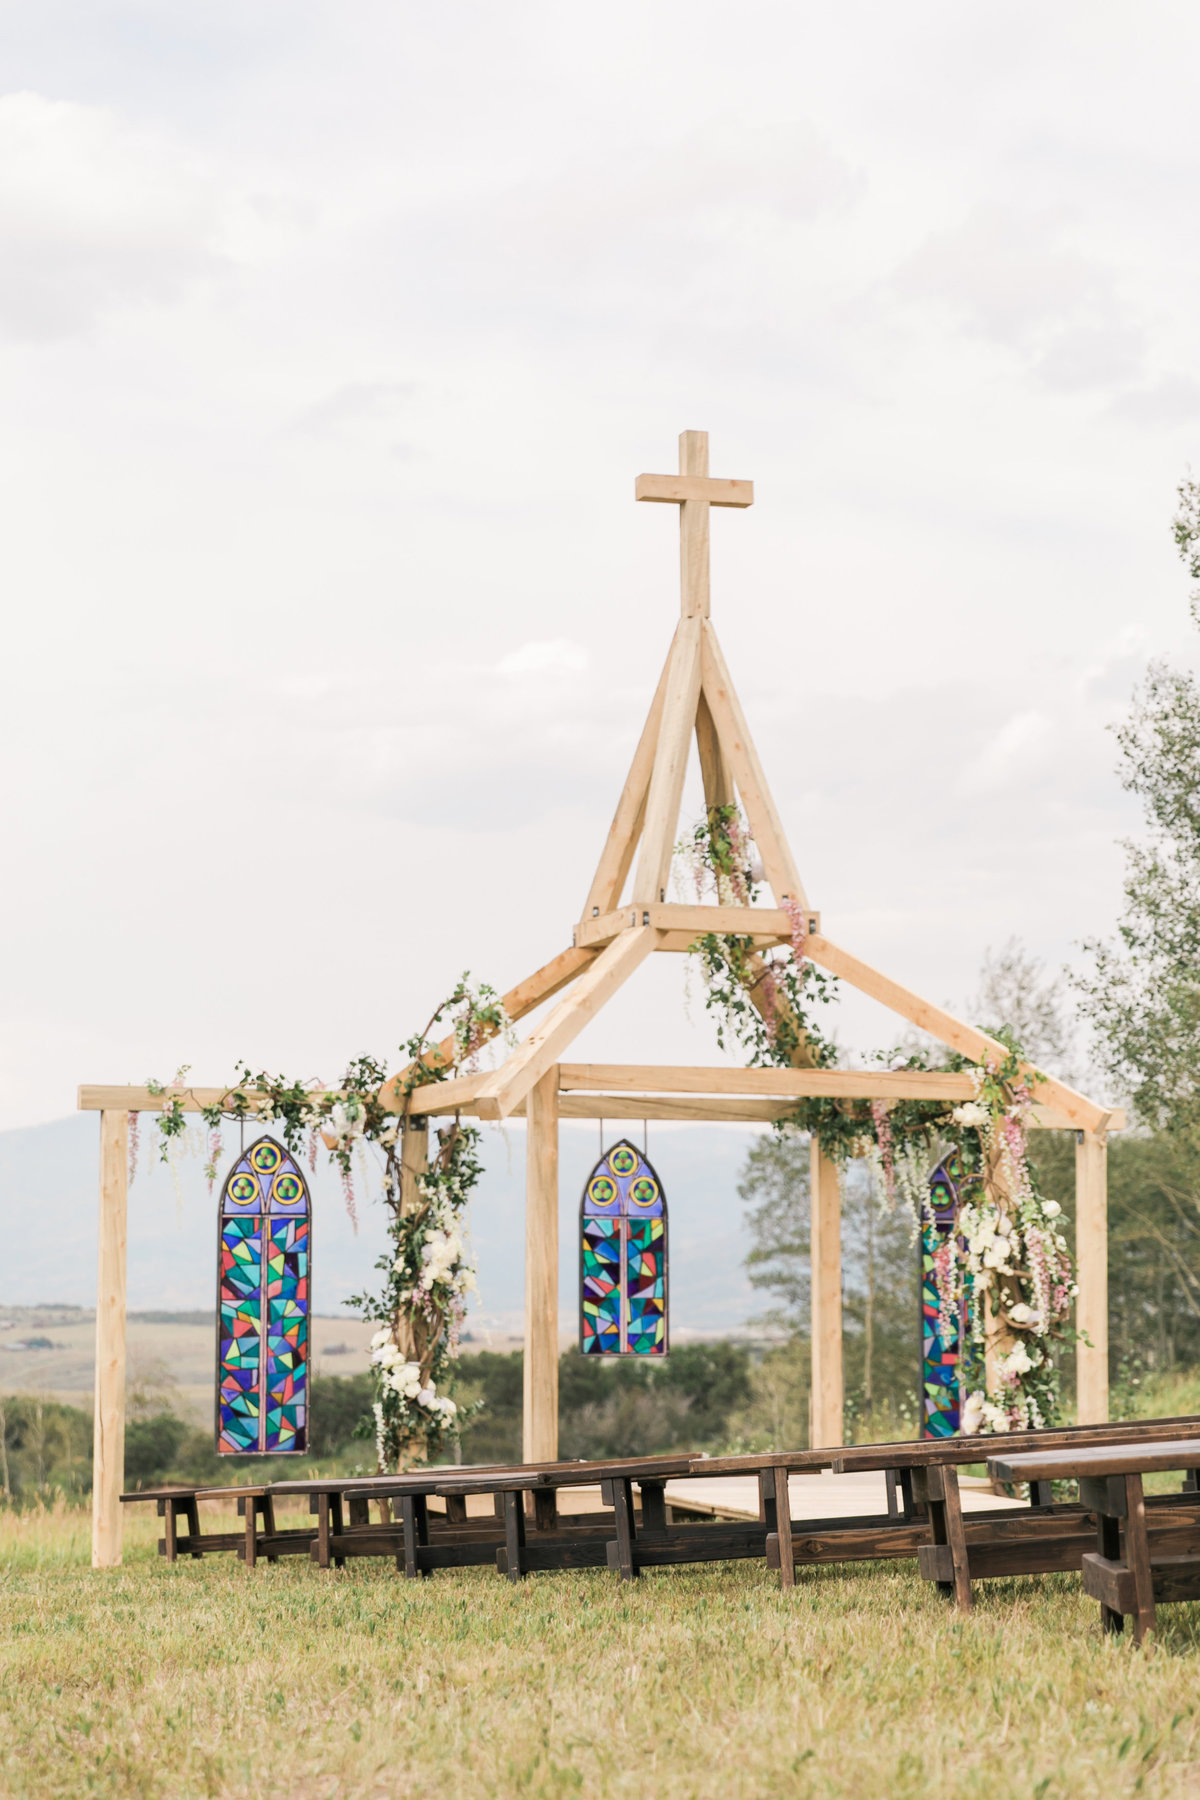 Kari_Ryan_Anderson_Colorado_Outdoor_Chapel_Wedding_Valorie_Darling_Photography - 35 of 126